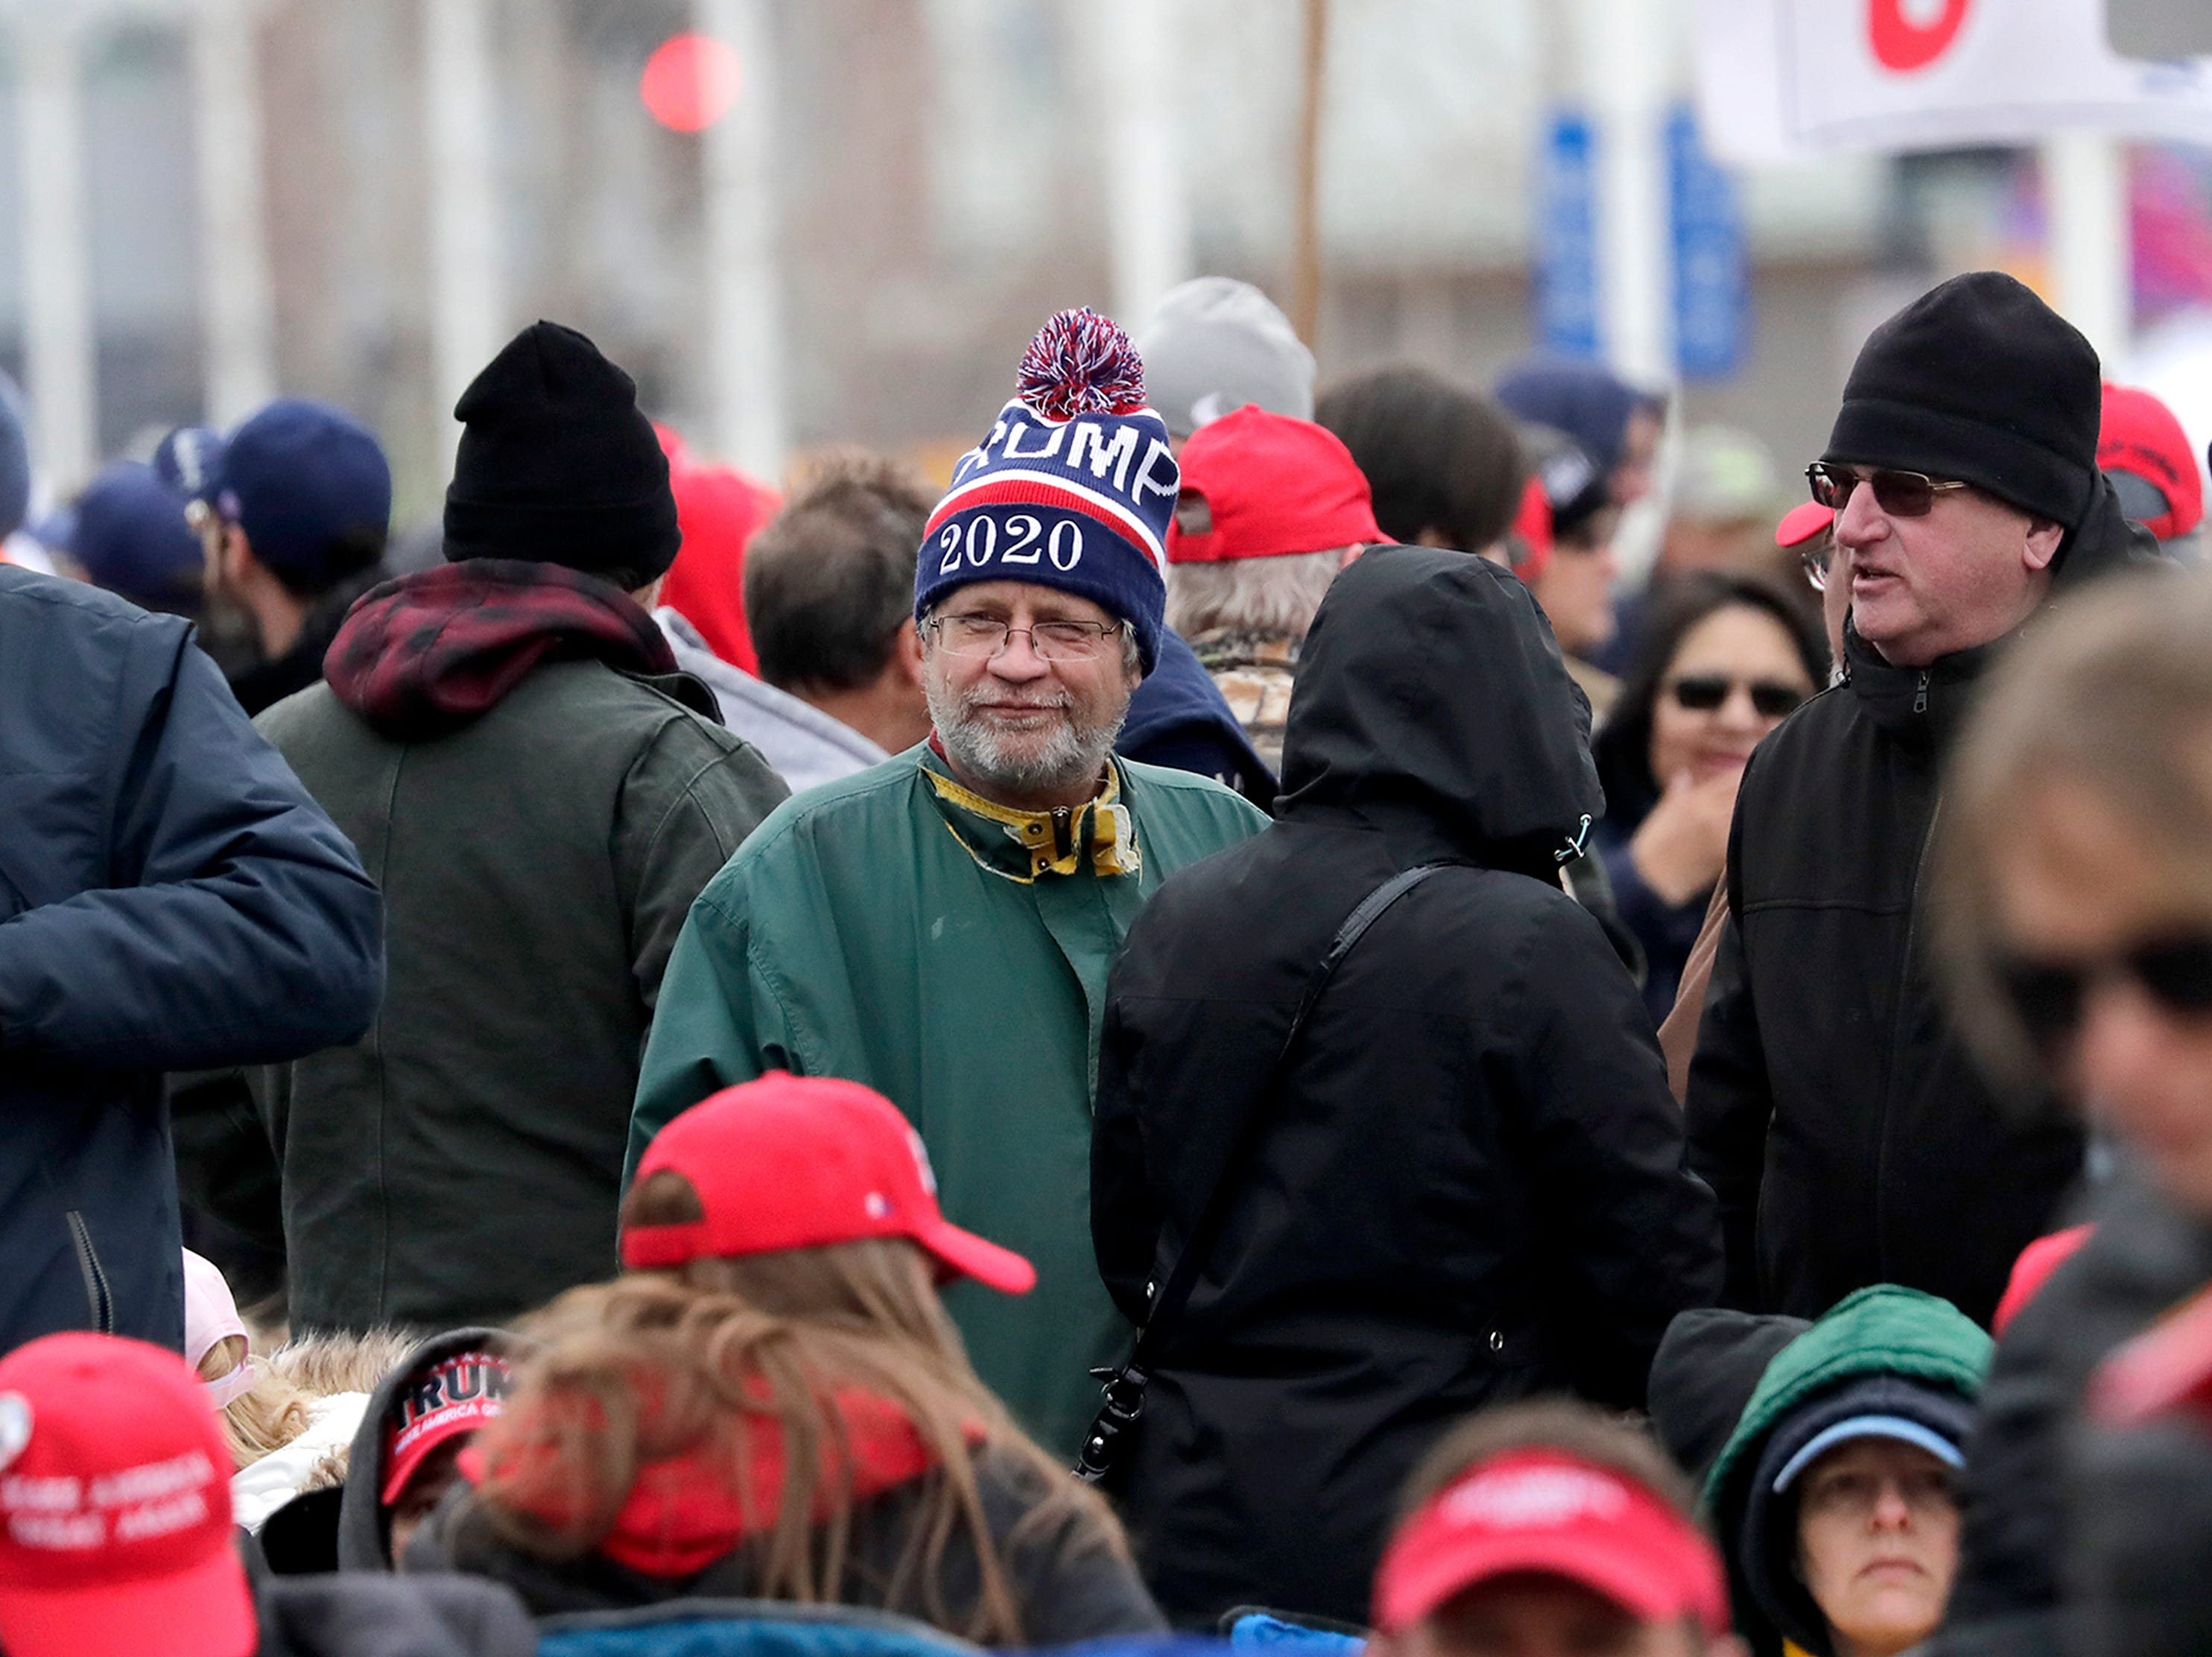 Supporters wait in line, some all night, before President Donald J. Trump's Make America Great Again Rally on Saturday, April 27, 2019, at the Resch Center in Green Bay, Wis.